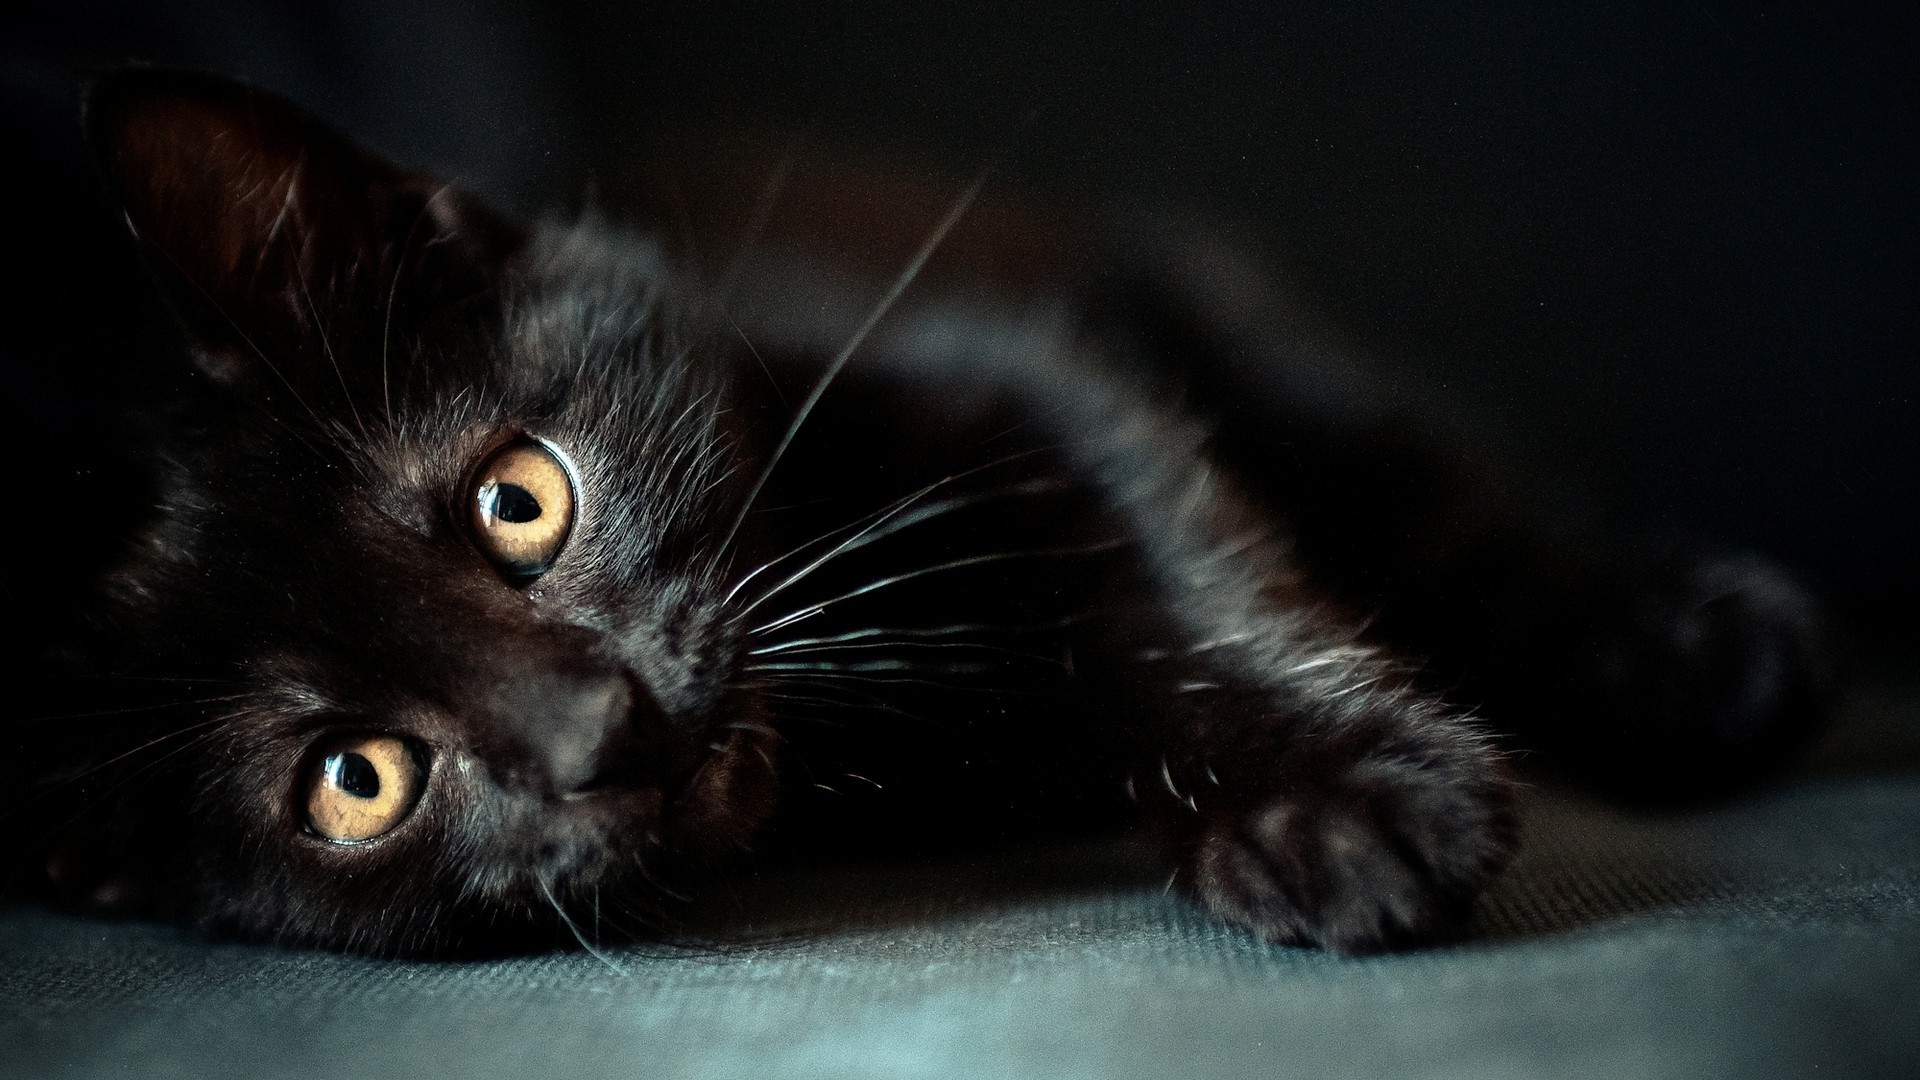 cat, Animals, Black Cats Wallpapers HD / Desktop and Mobile Backgrounds